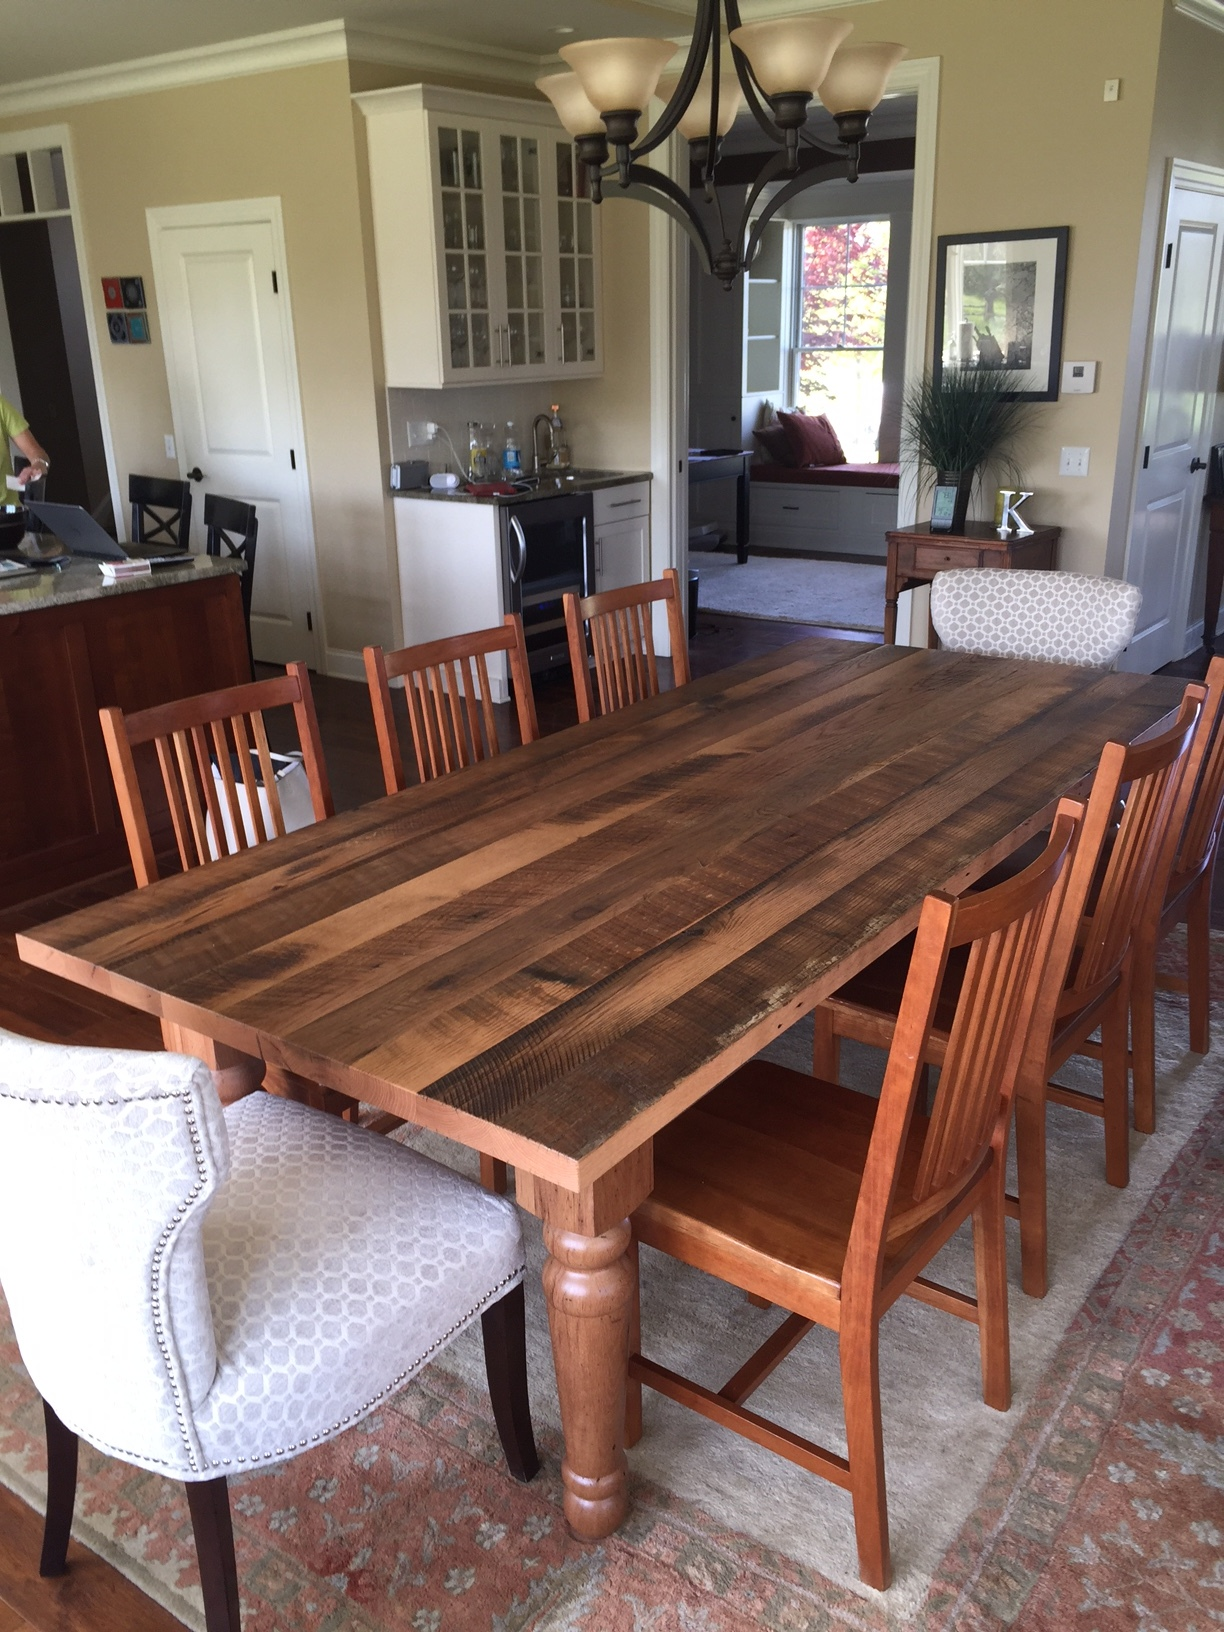 Farmhouse style dining table with reclaimed table top